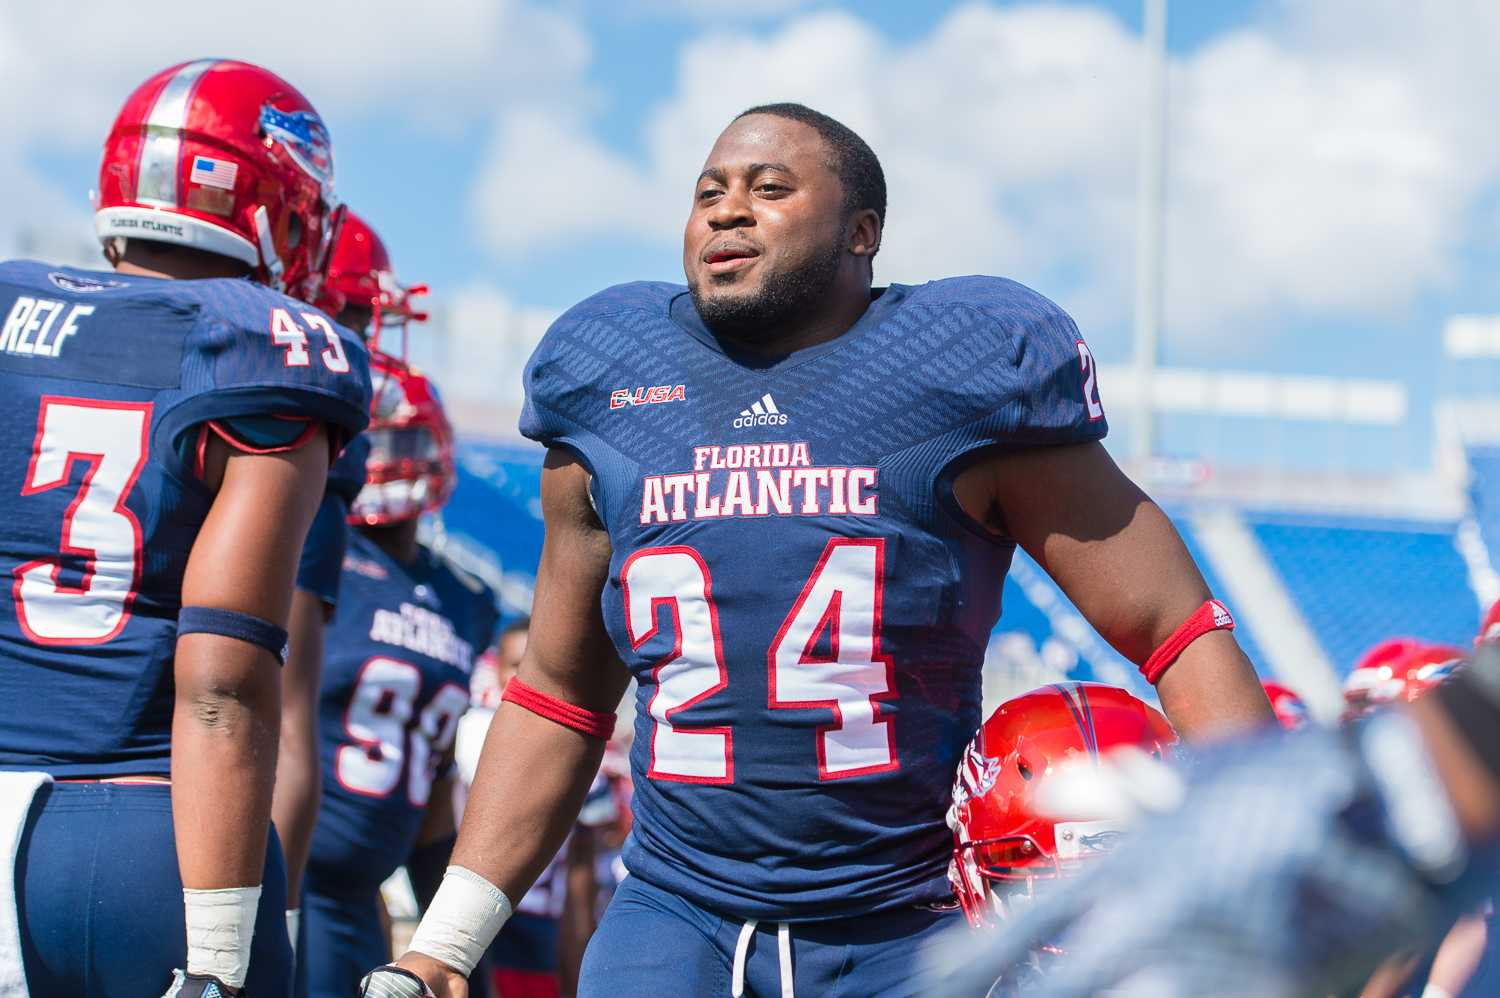 FAU senior running back Tony Moore walks through the human tunnel of teammates during the Senior Day Celebration prior to the game.